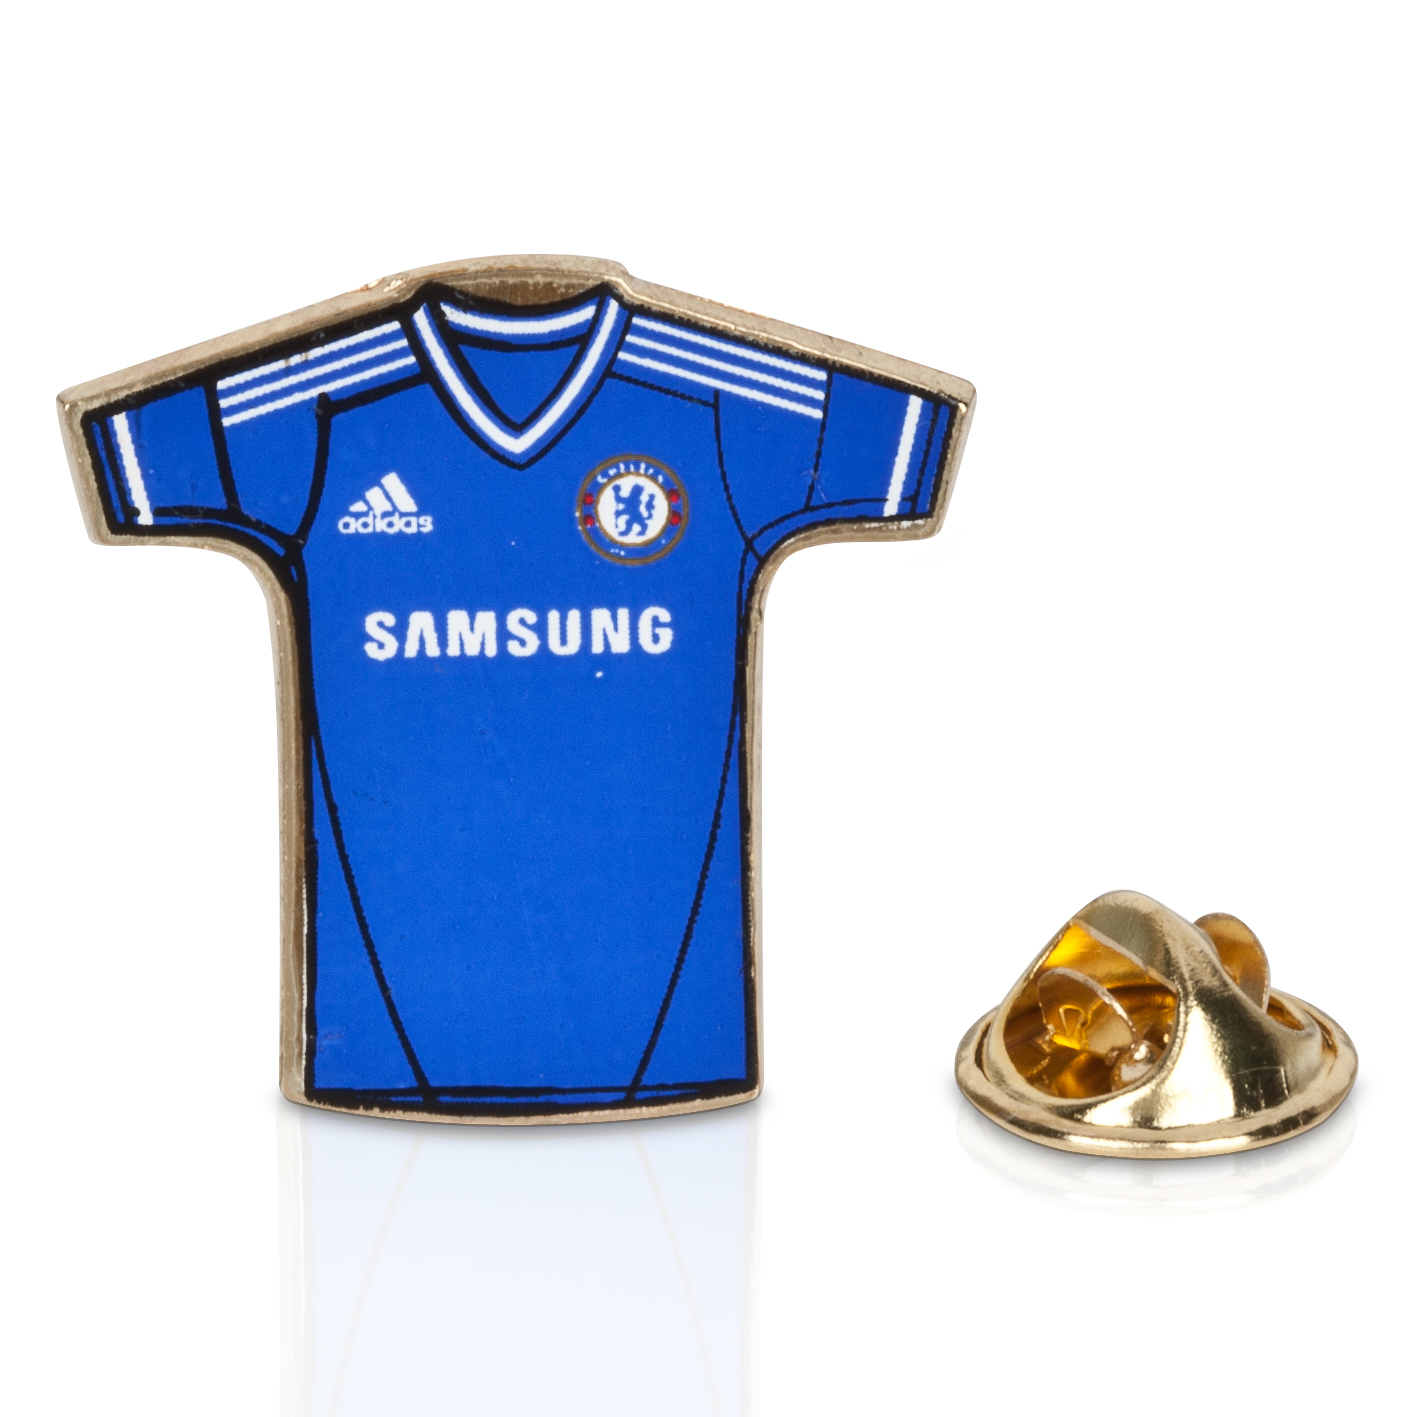 Chelsea 2013/14 Home kit Badge